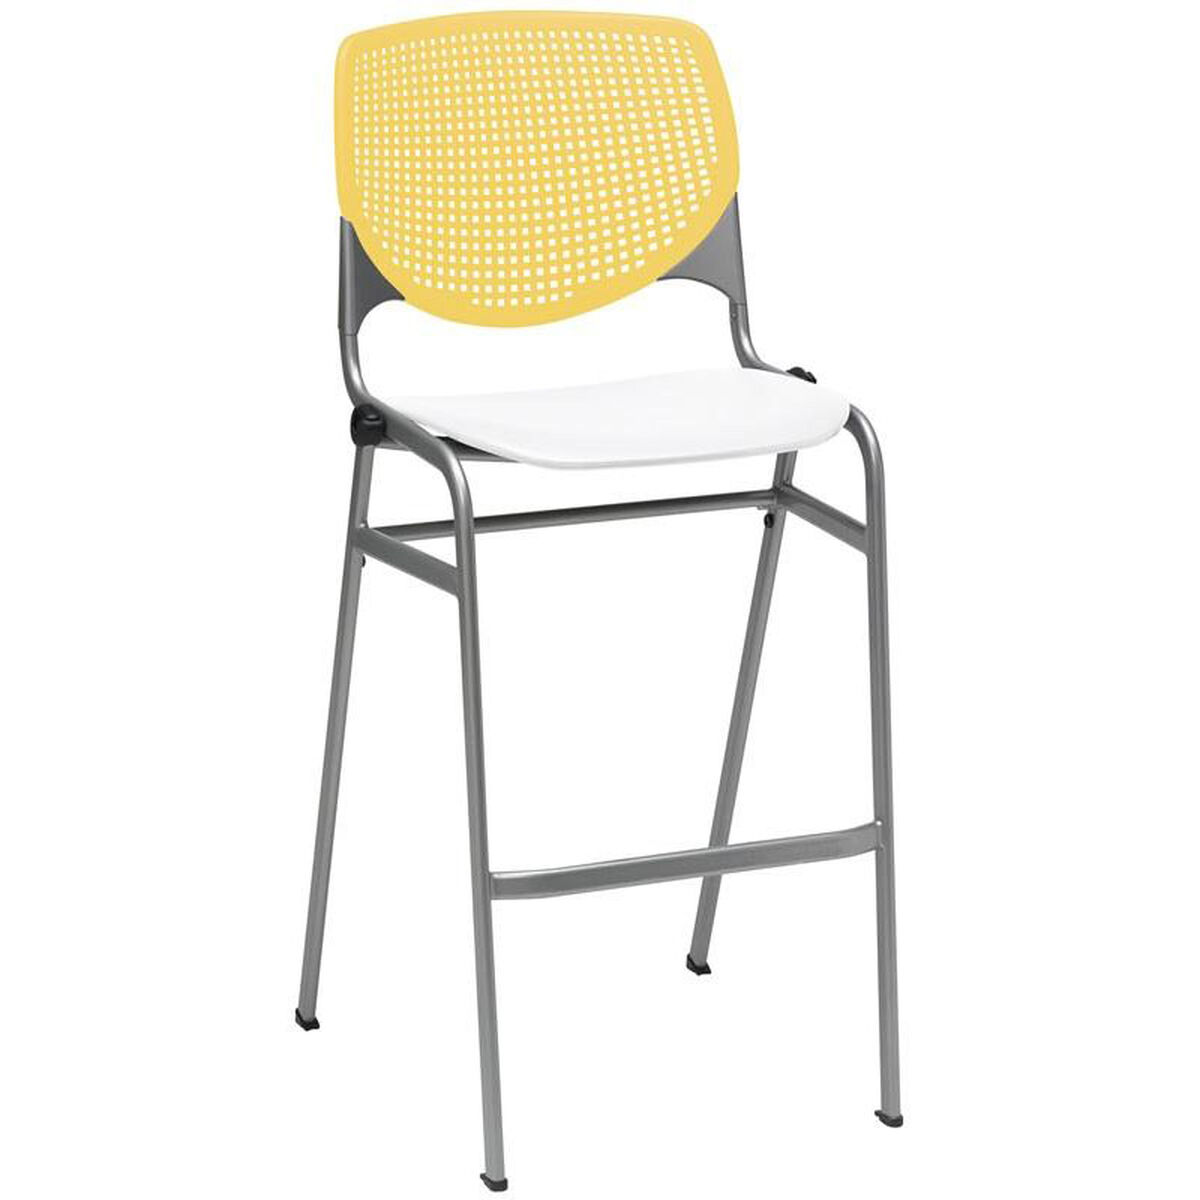 kool furniture. Our 2300 KOOL Series Stacking Poly Armless Barstool With Yellow  Perforated Back And White Seat Is Kool Furniture